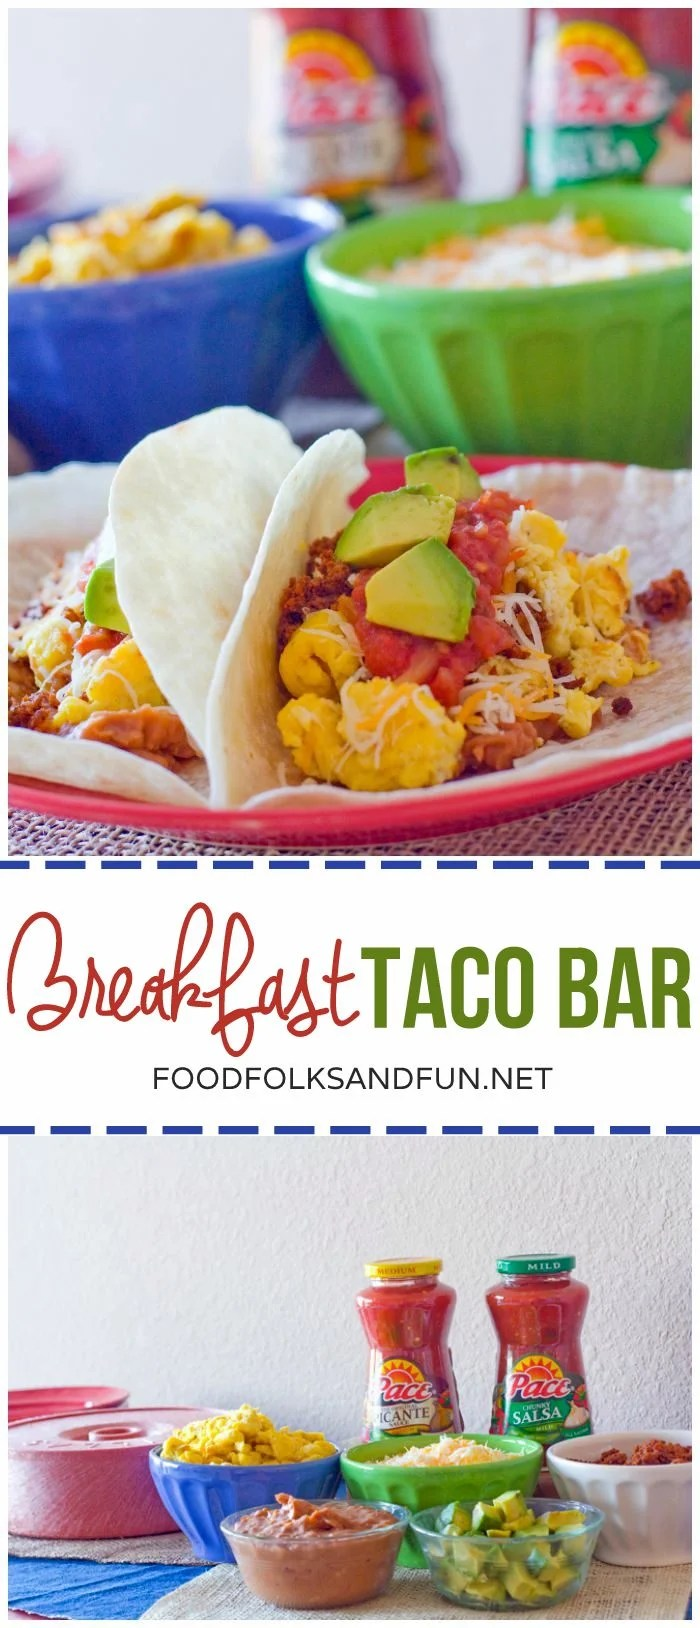 This Breakfast Taco Bar is my secret weapon for out of town guests. It's easy to prepare and throw together and everyone always loves it! via @foodfolksandfun